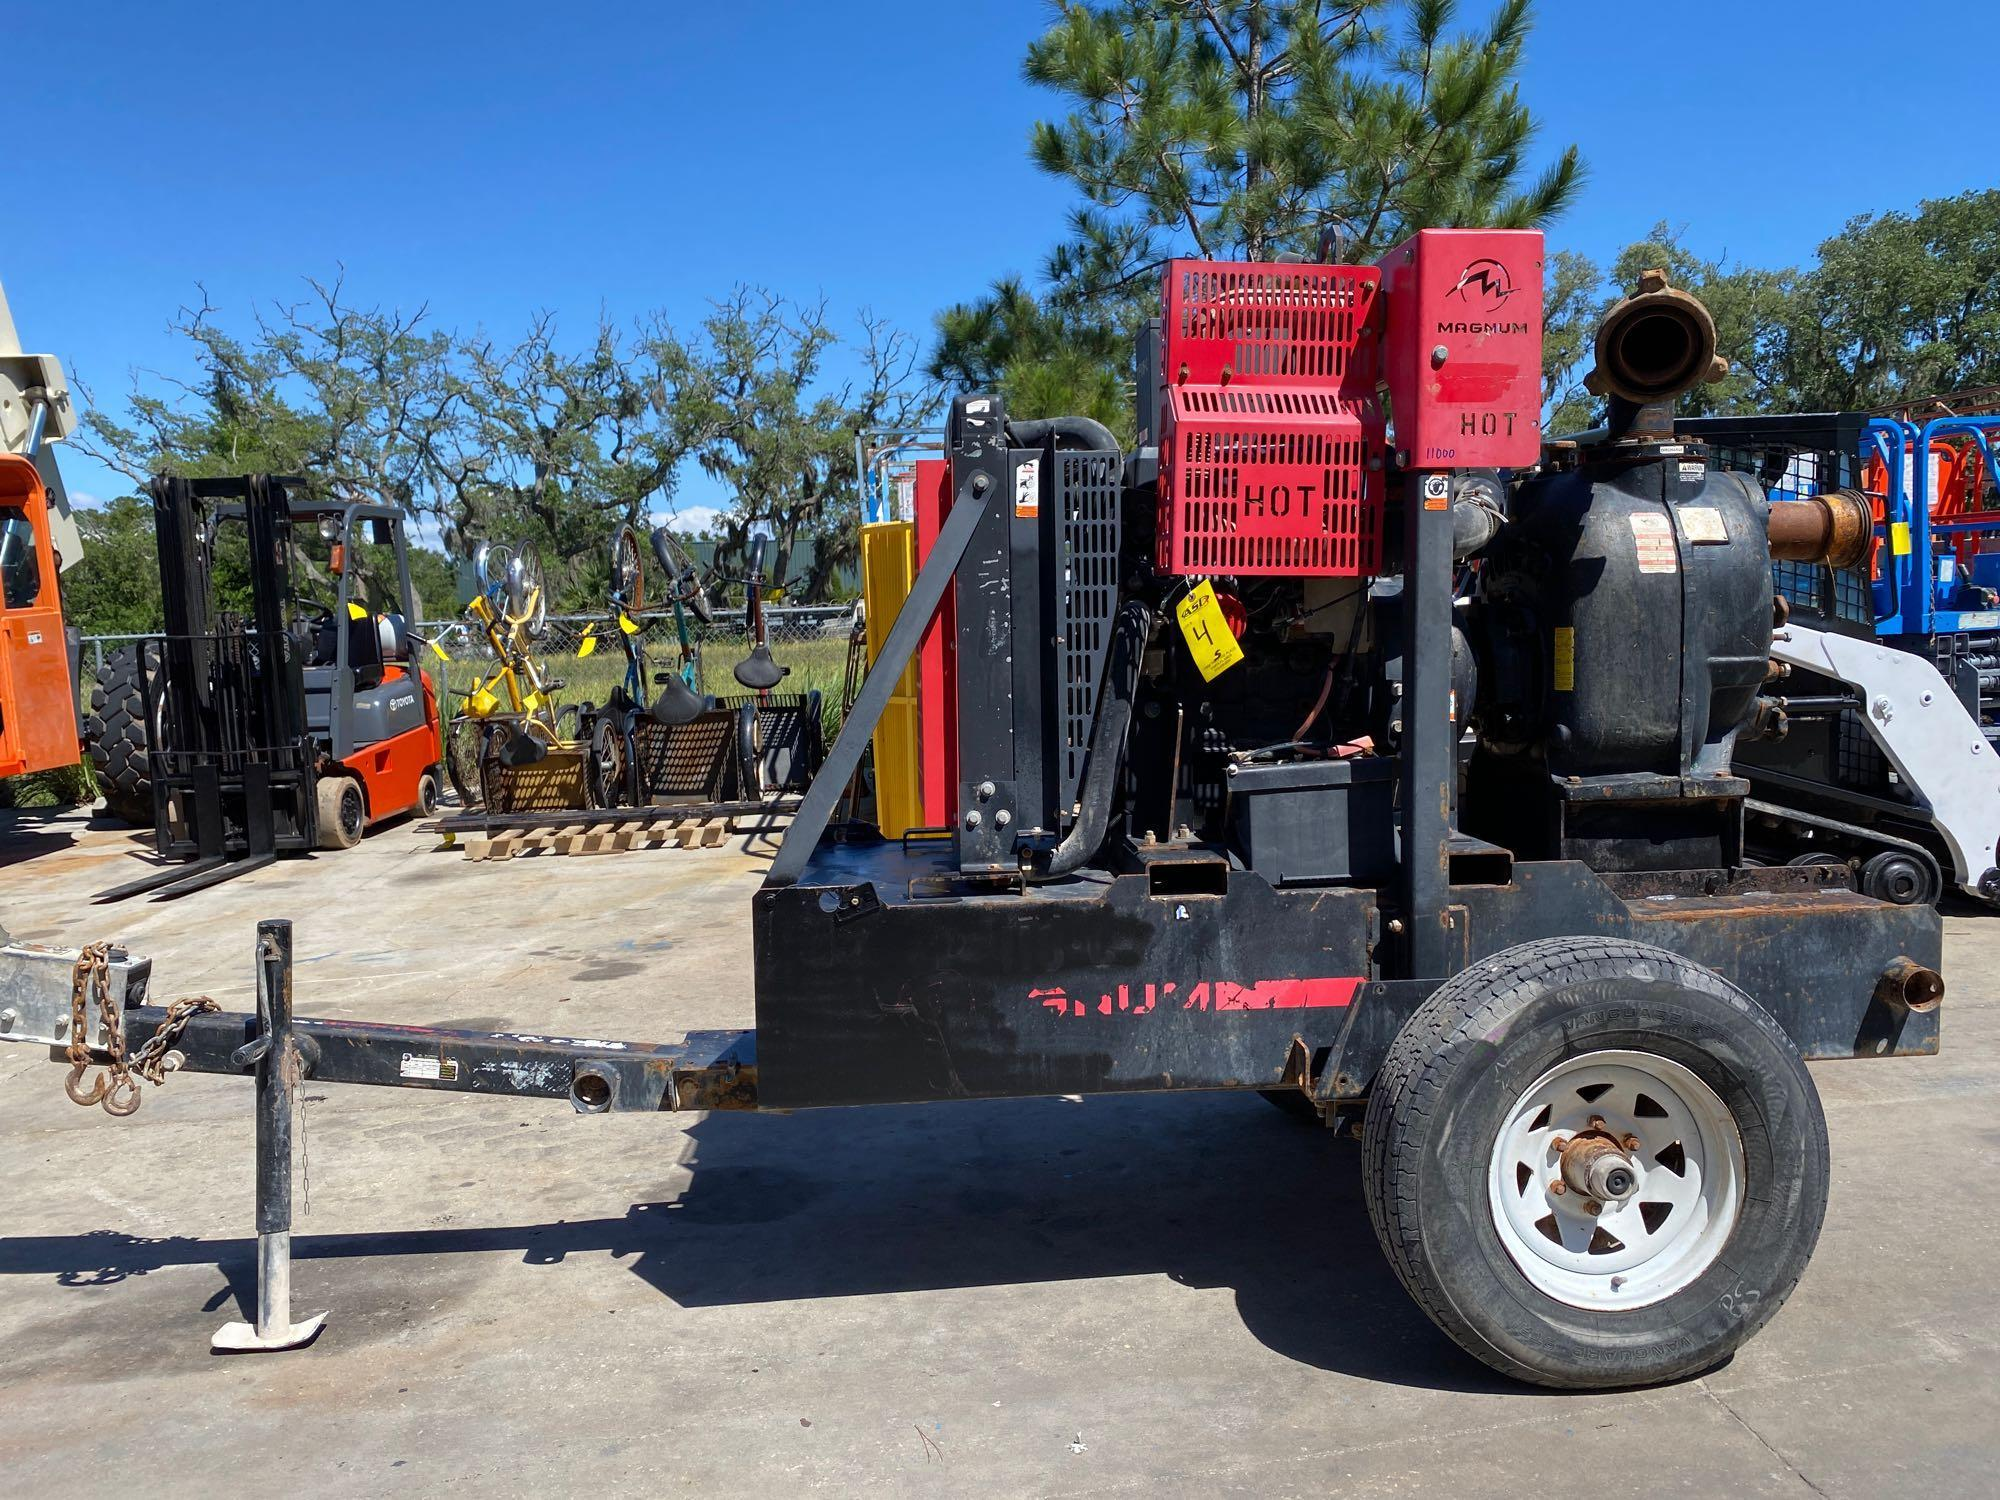 TRAILER MOUNTED MAGNUM 4 INCH DIESEL PUMP, RUNS AND OPERATES